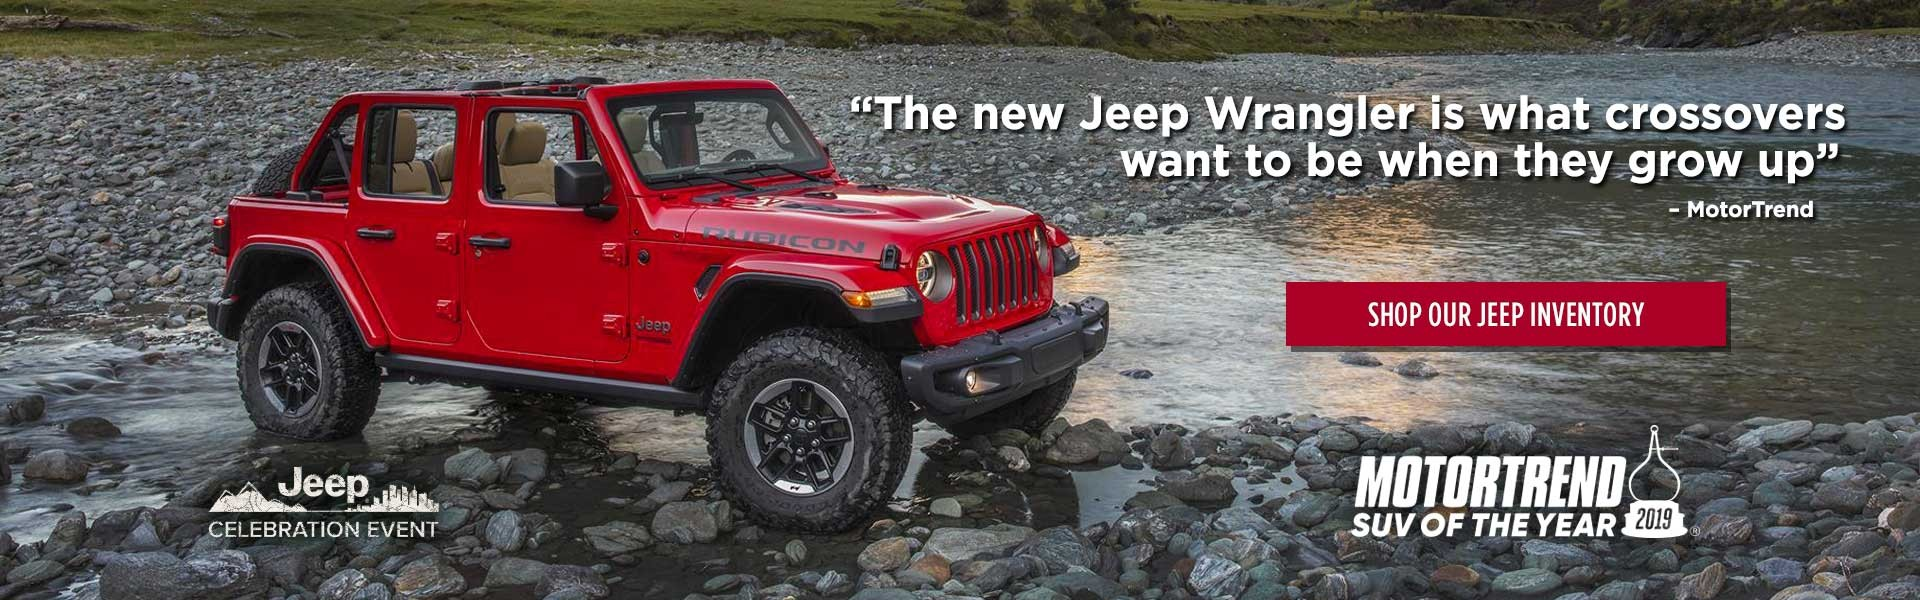 Wrangler Wins 2019 MotorTrend SUV of the Year